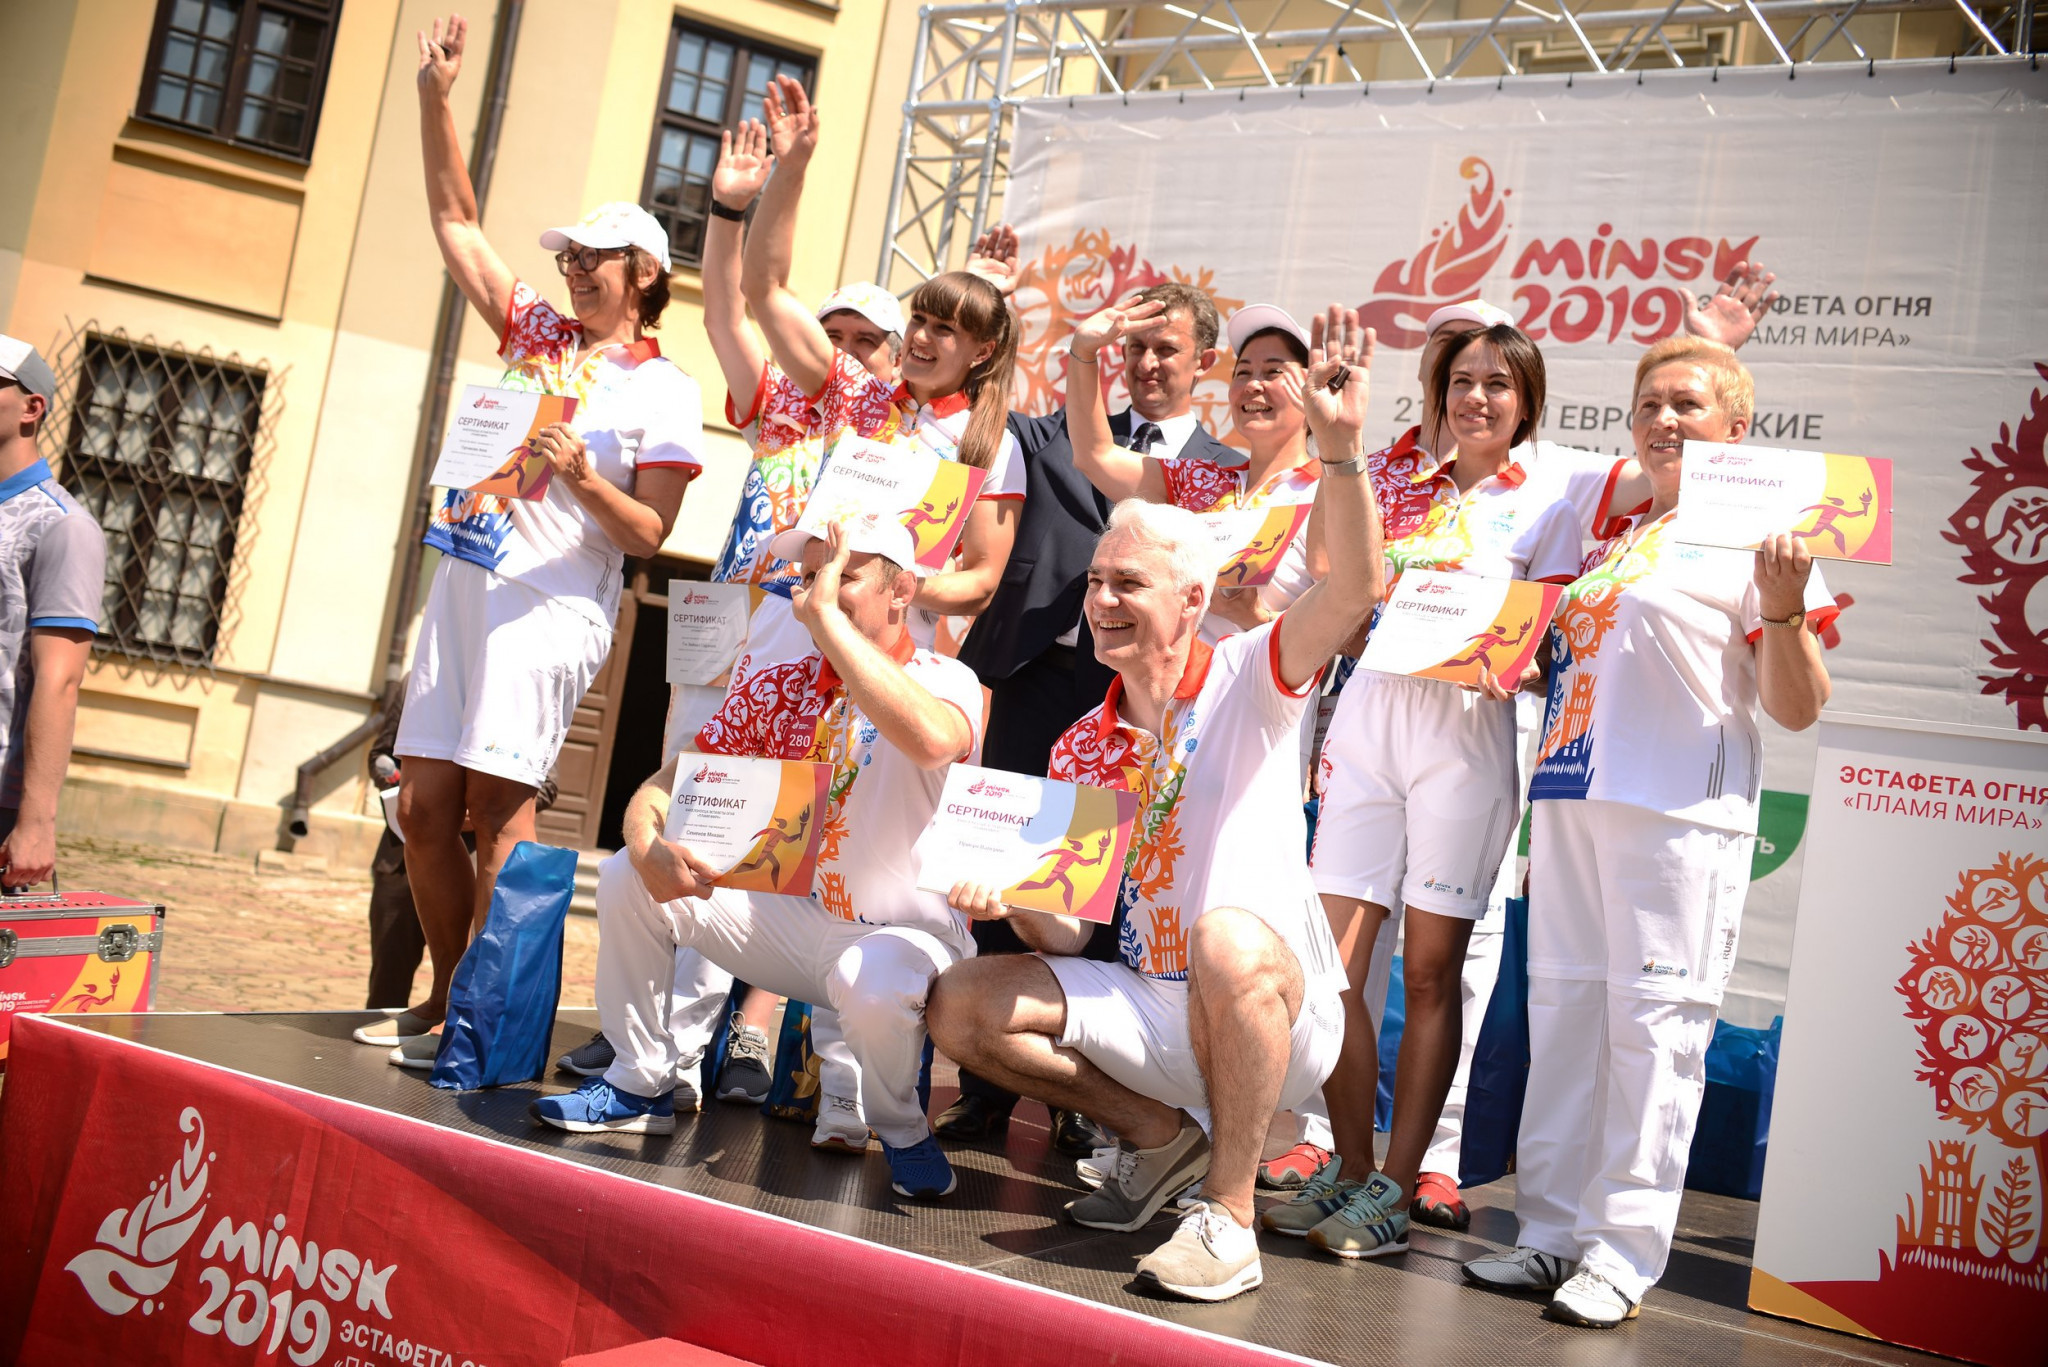 Former Arsenal and Barcelona midfielder Hleb carries Minsk 2019 Torch